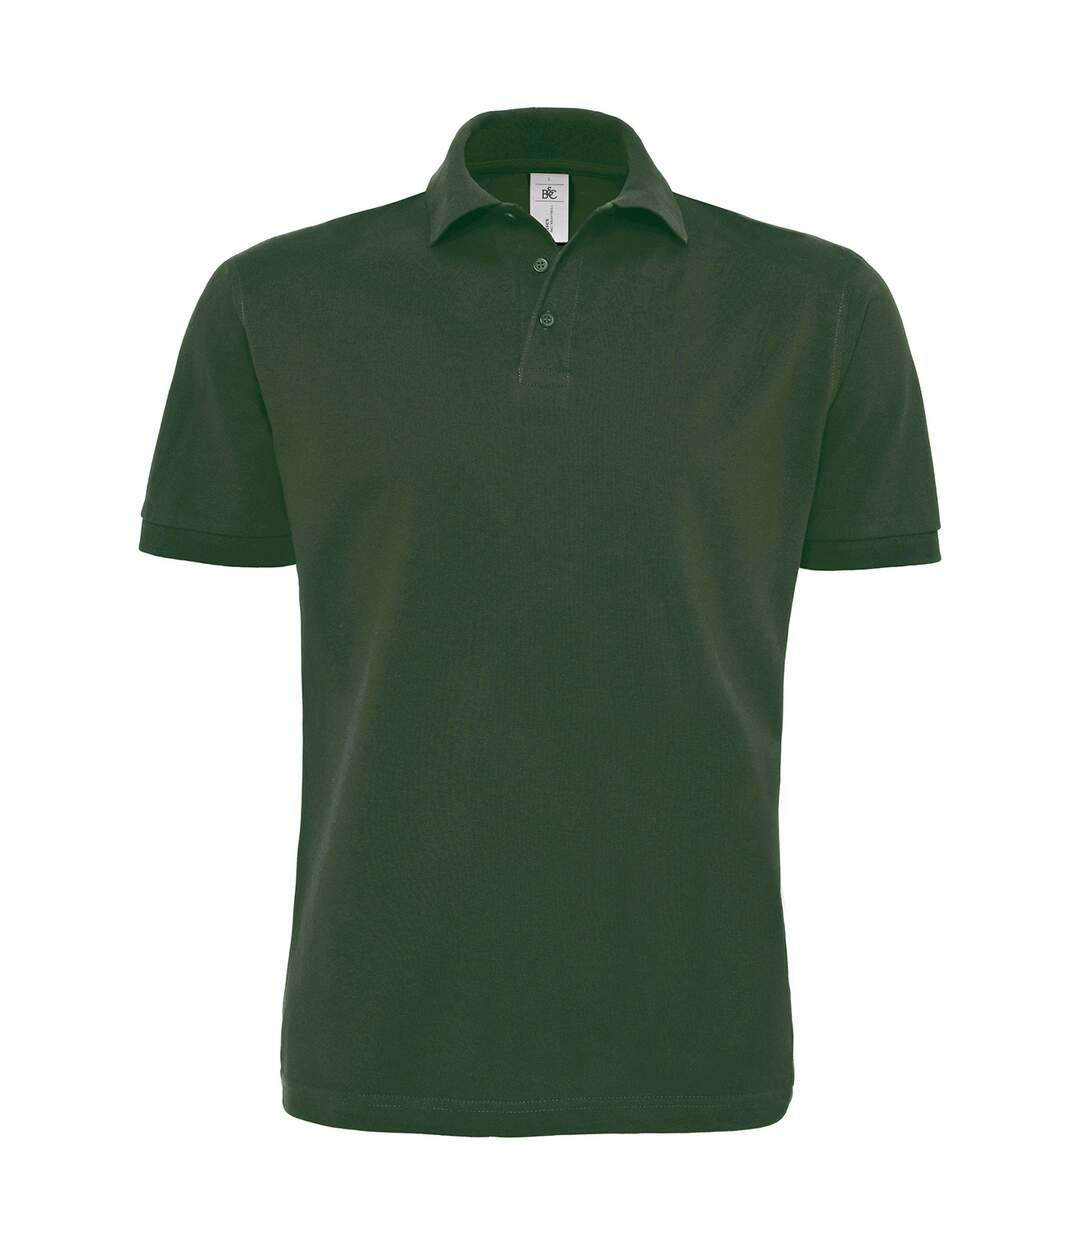 Polo lourd manches courtes - homme - PU422 - vert bouteille